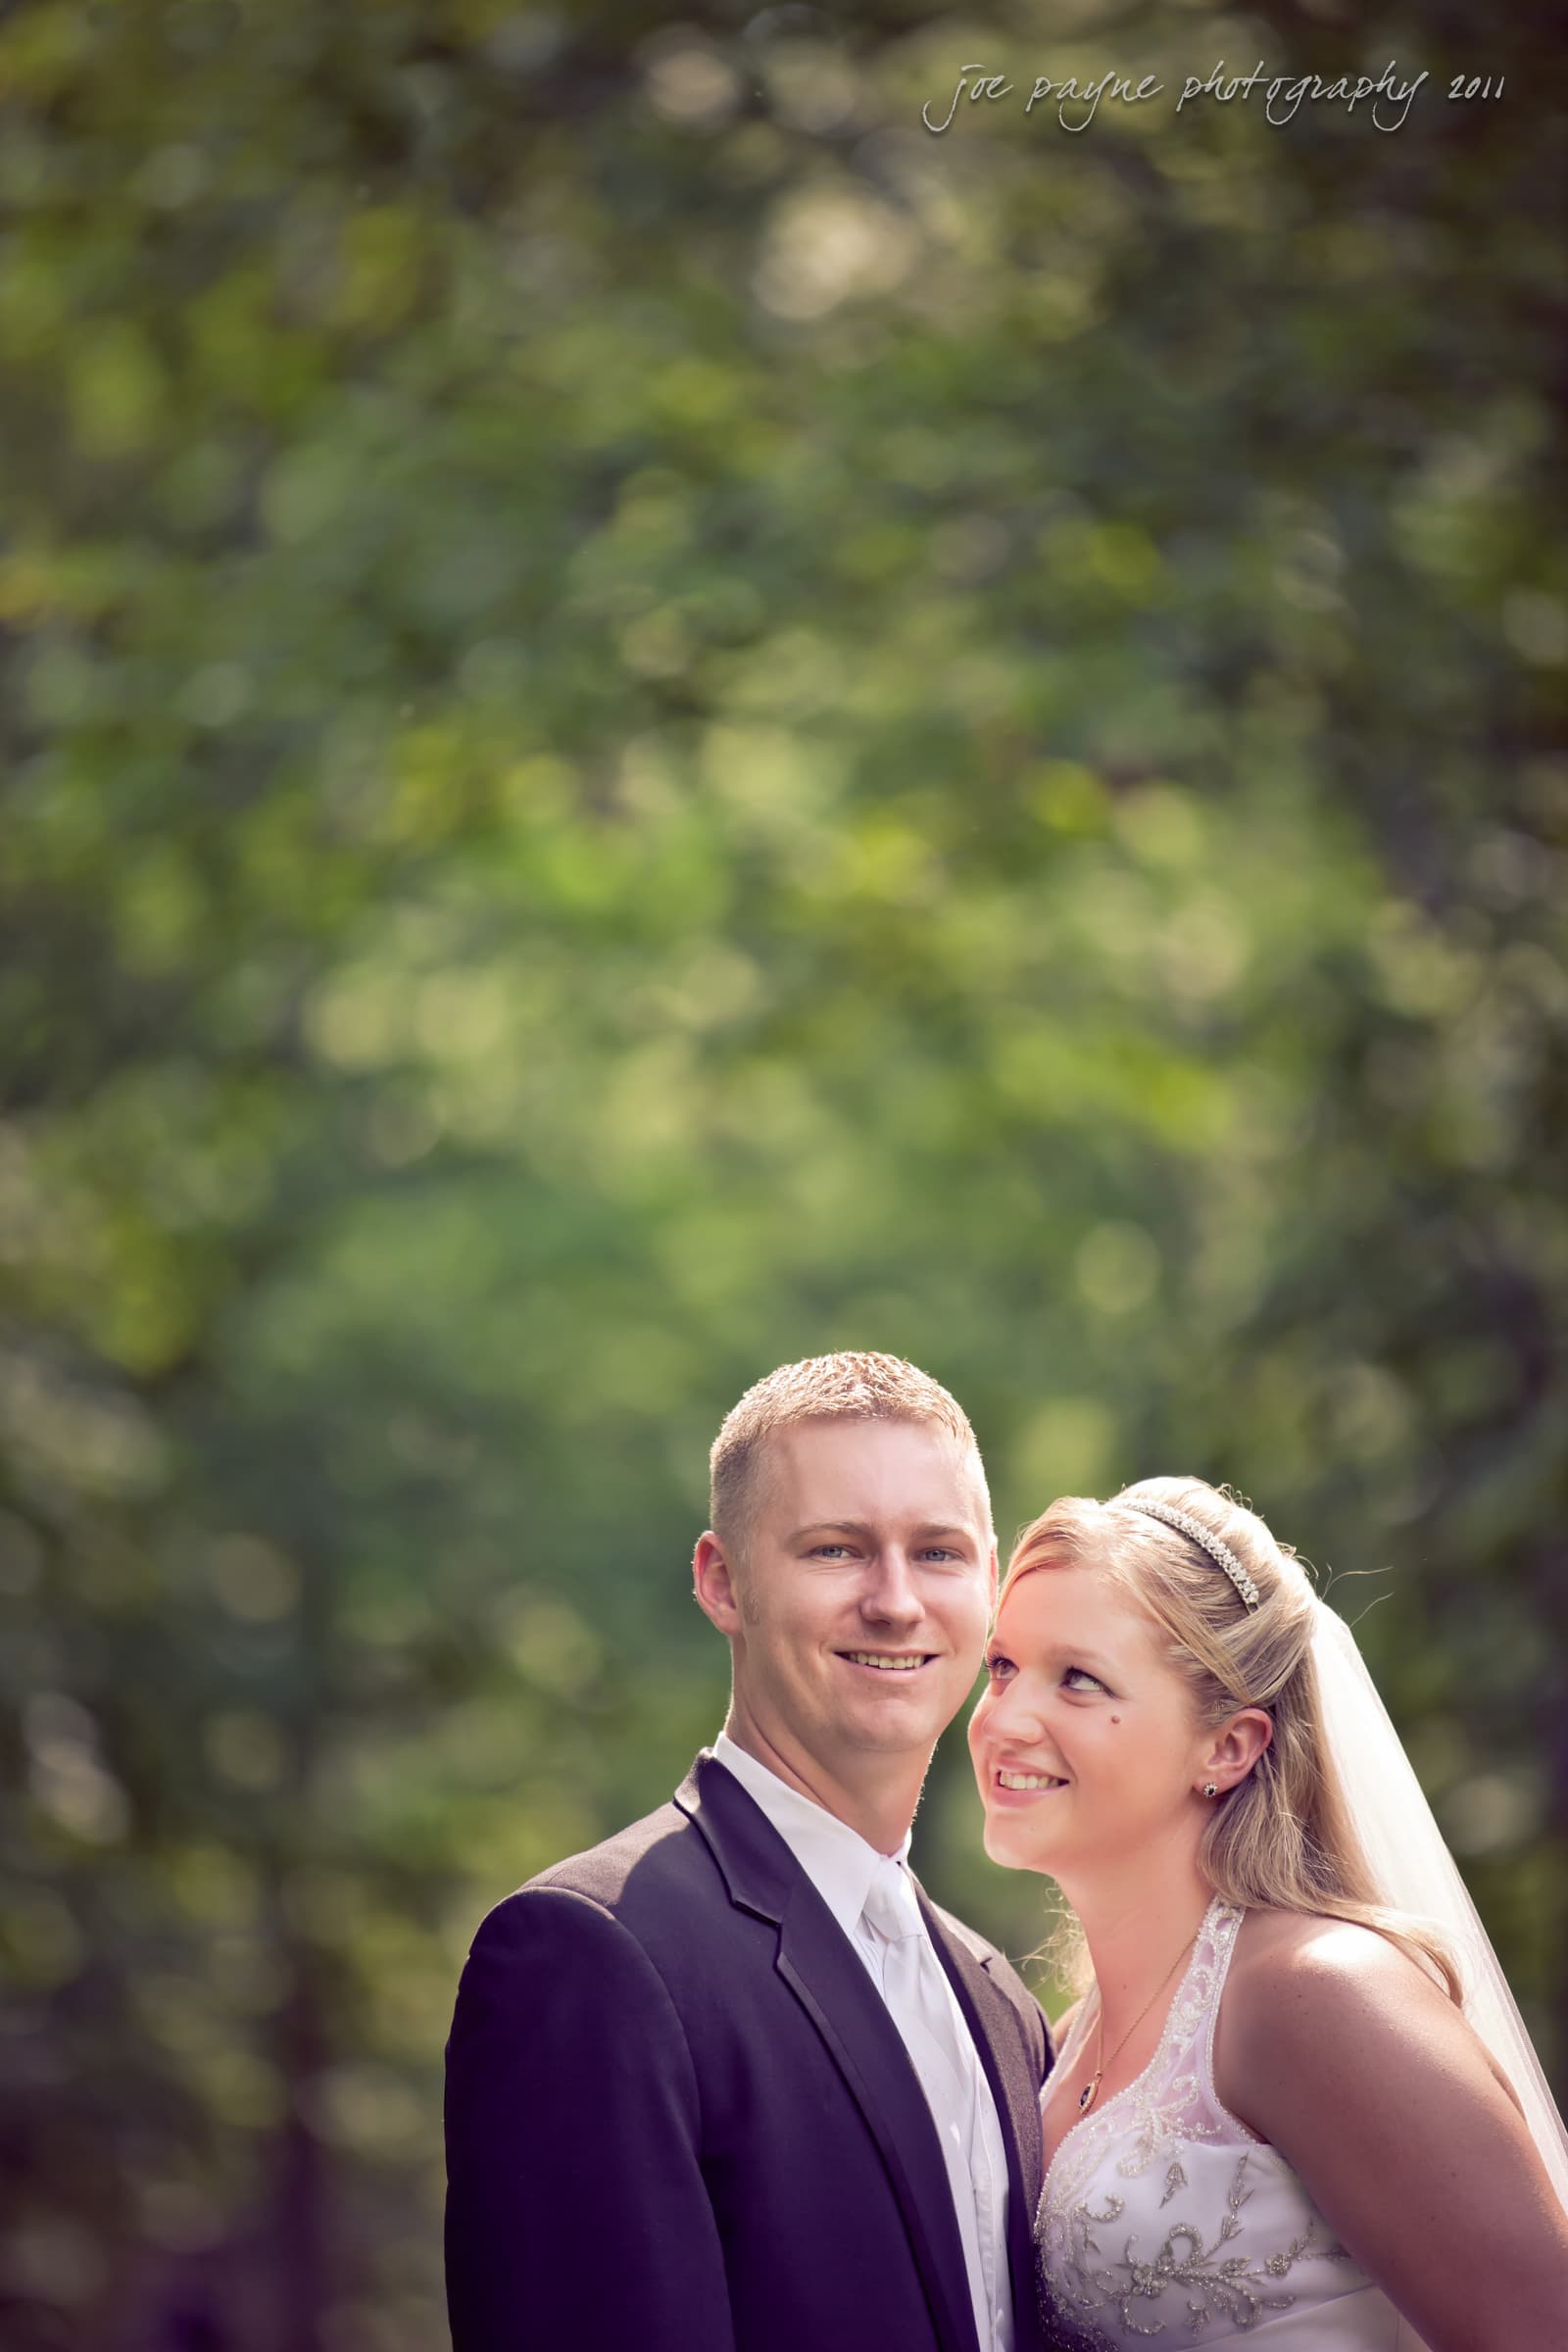 raleigh wedding photographer – image of the week: no. 2